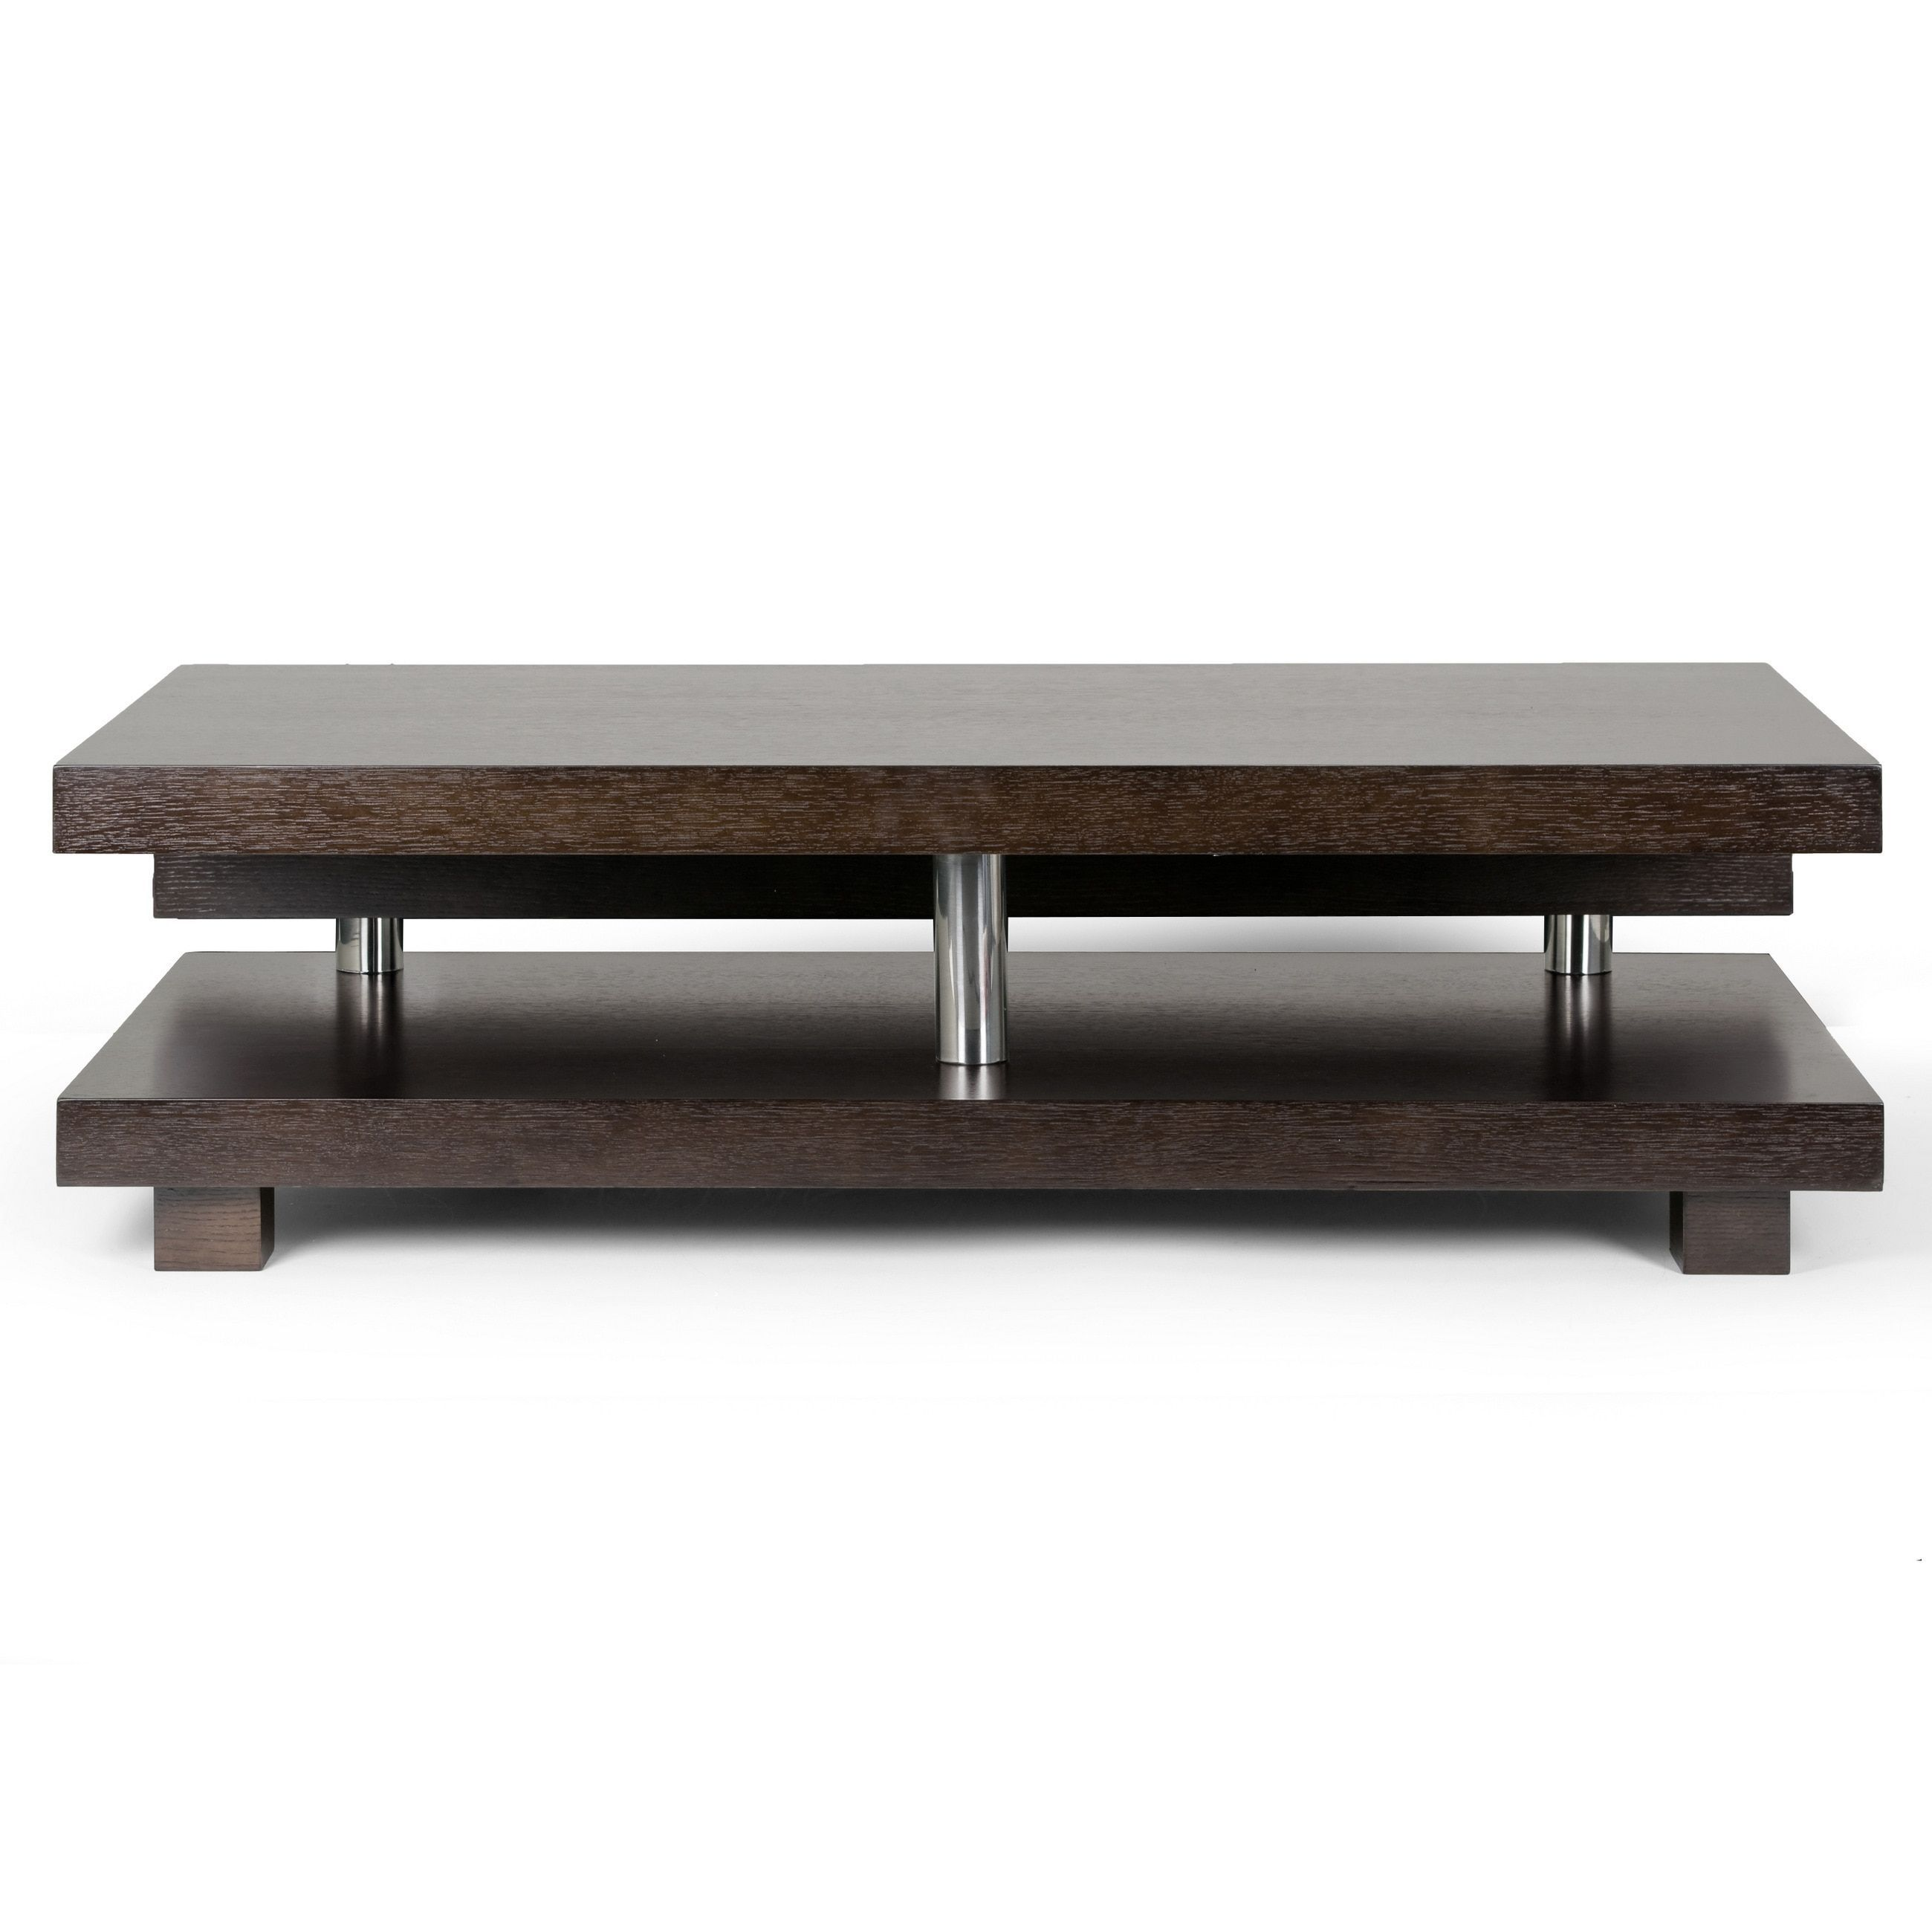 Glamour Alain Modern Coffee Table With Decorative Accent Bar Dark Brown